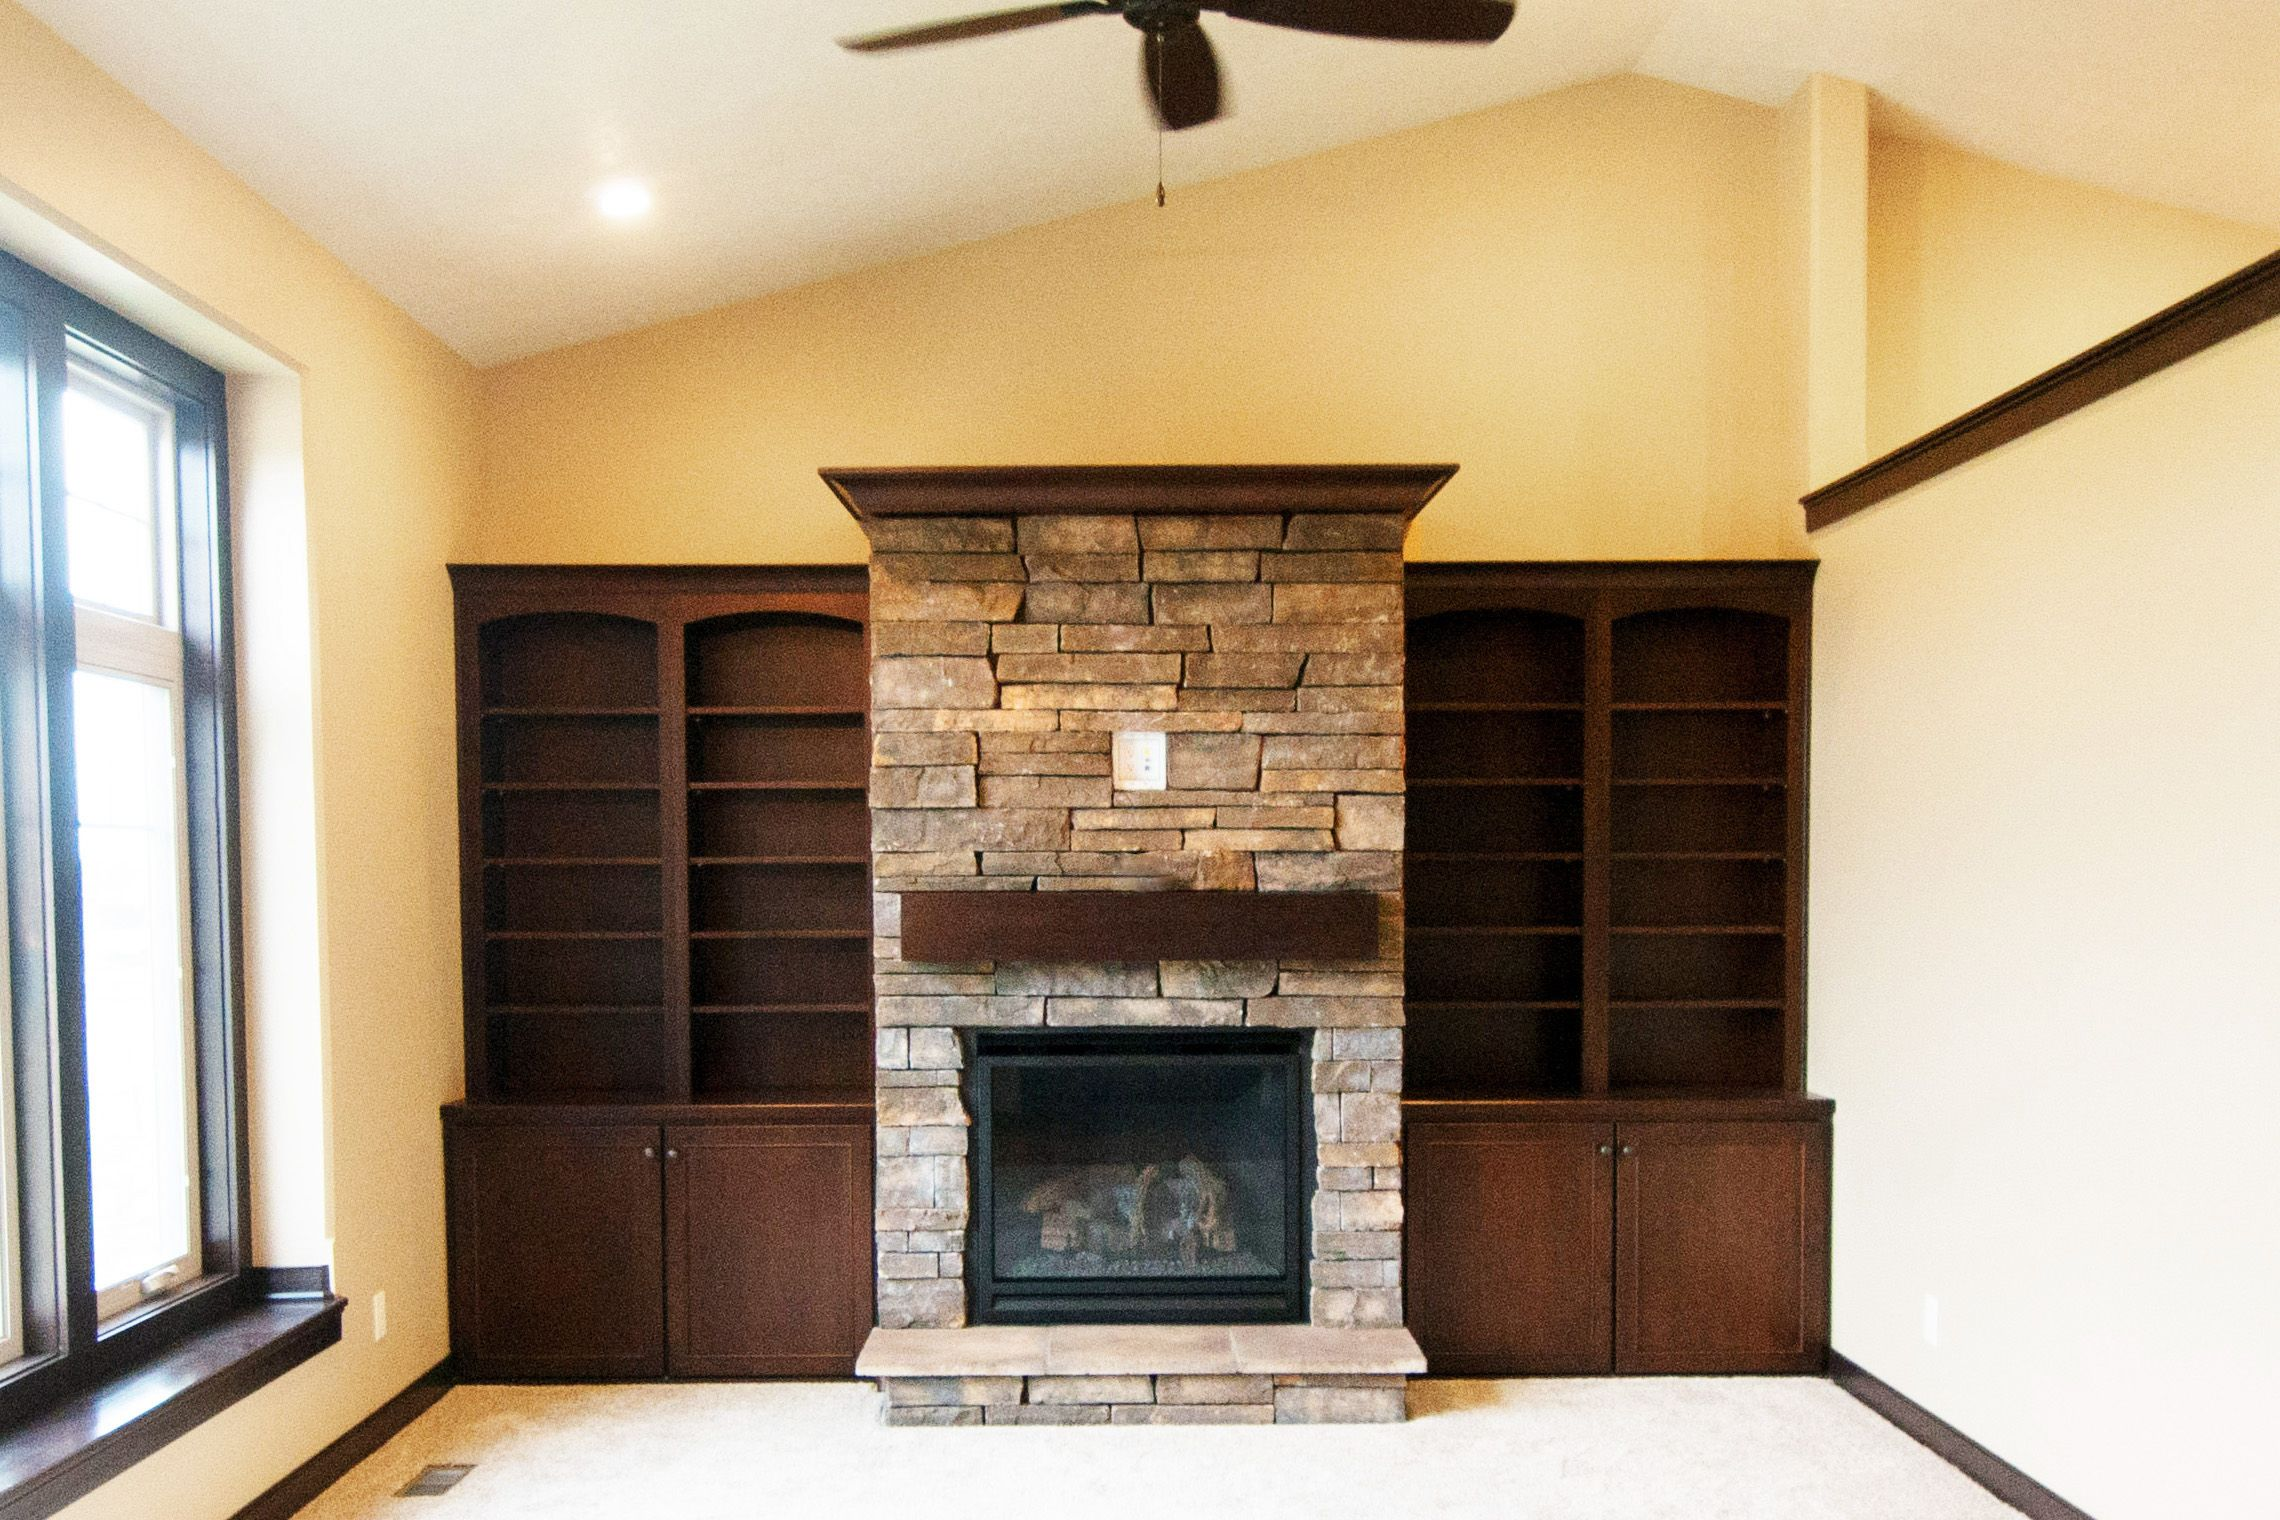 living room wall cabinets built%0A Stone fireplace in living room with builtin custom shelving